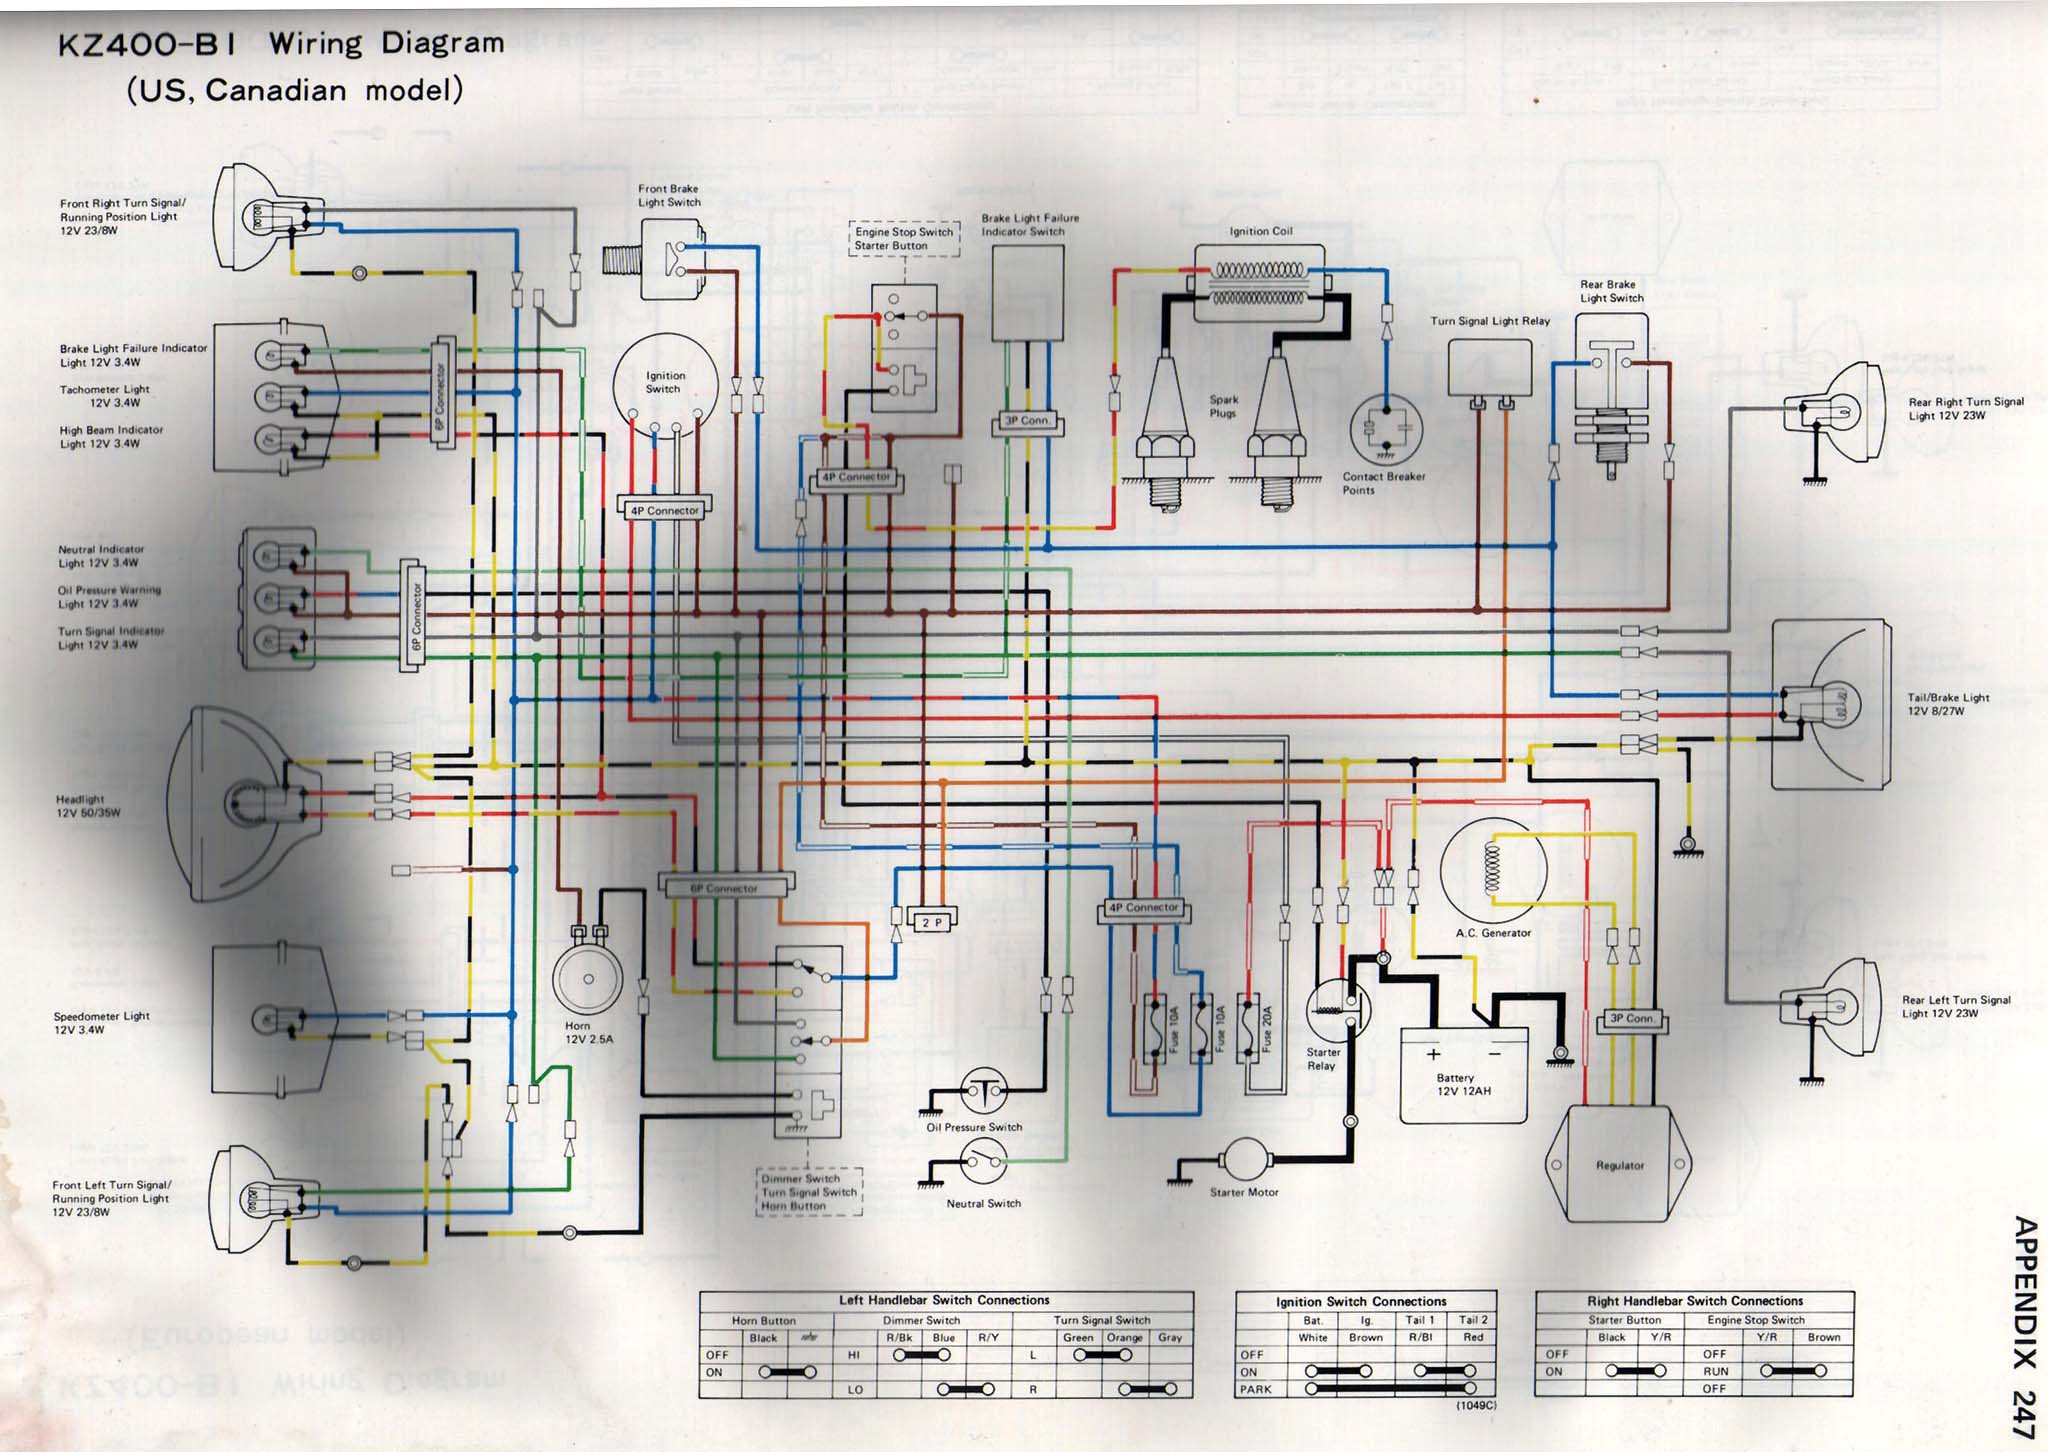 simple wiring diagram refrigerator 78 kz400 lighting - signals & gauges - kzrider forum ... kz400 simple wiring diagram